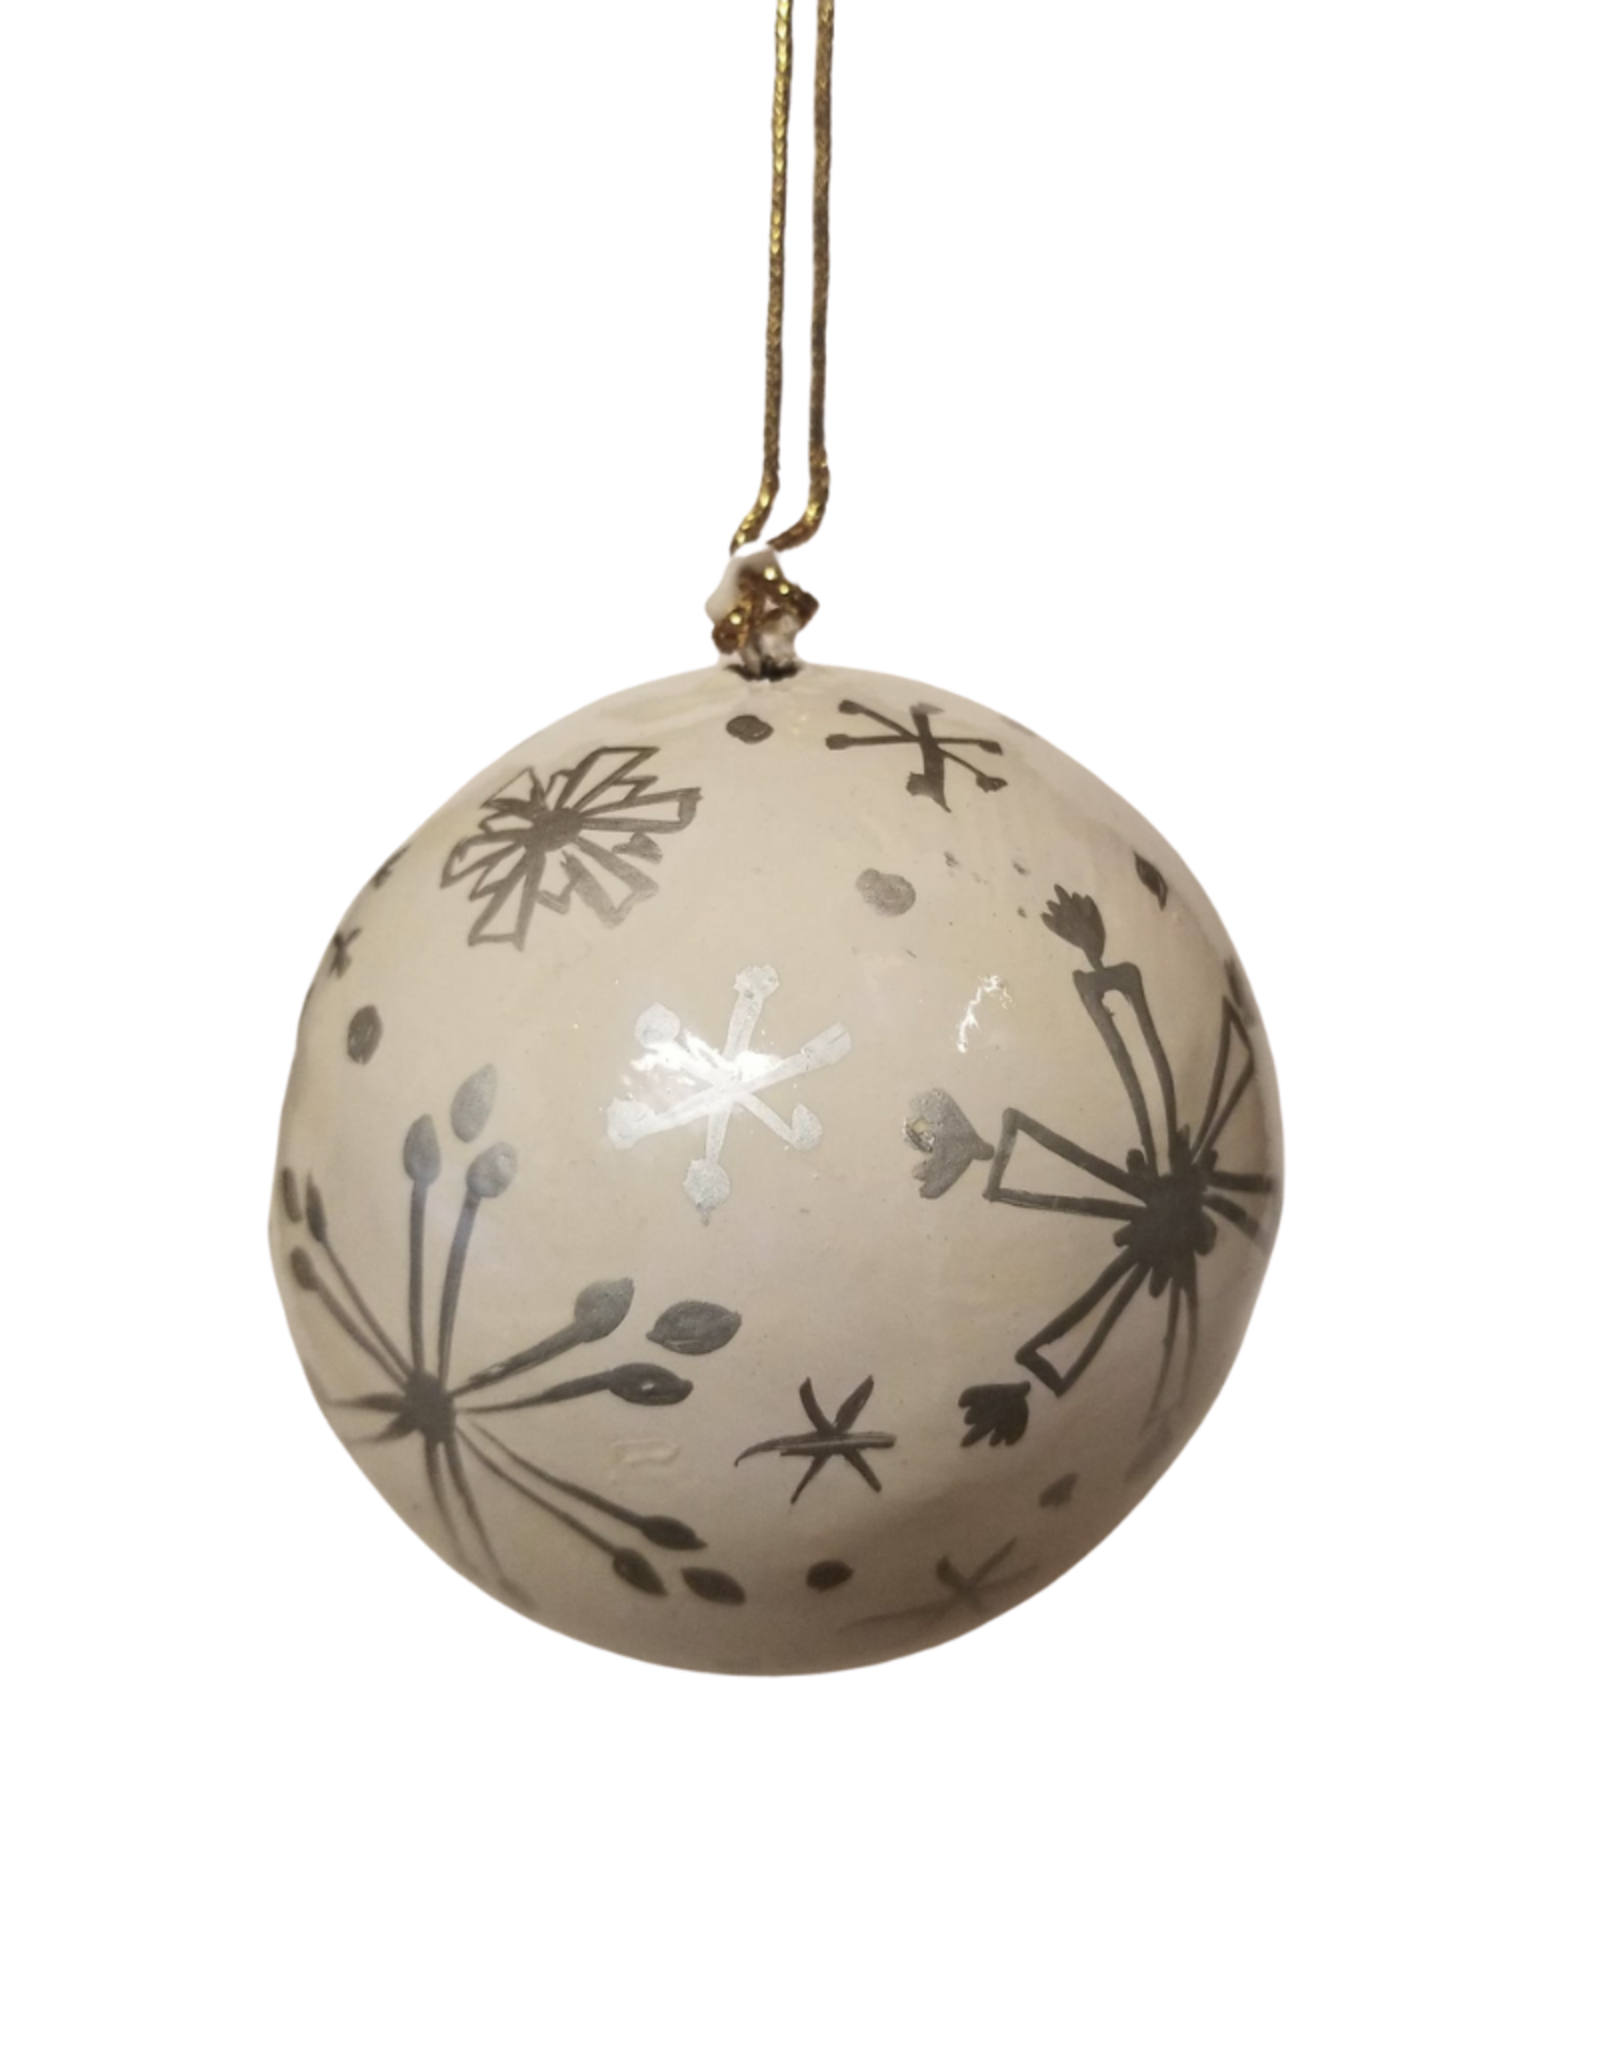 Global Crafts Ornament, Handpainted Silver Snowflakes - India